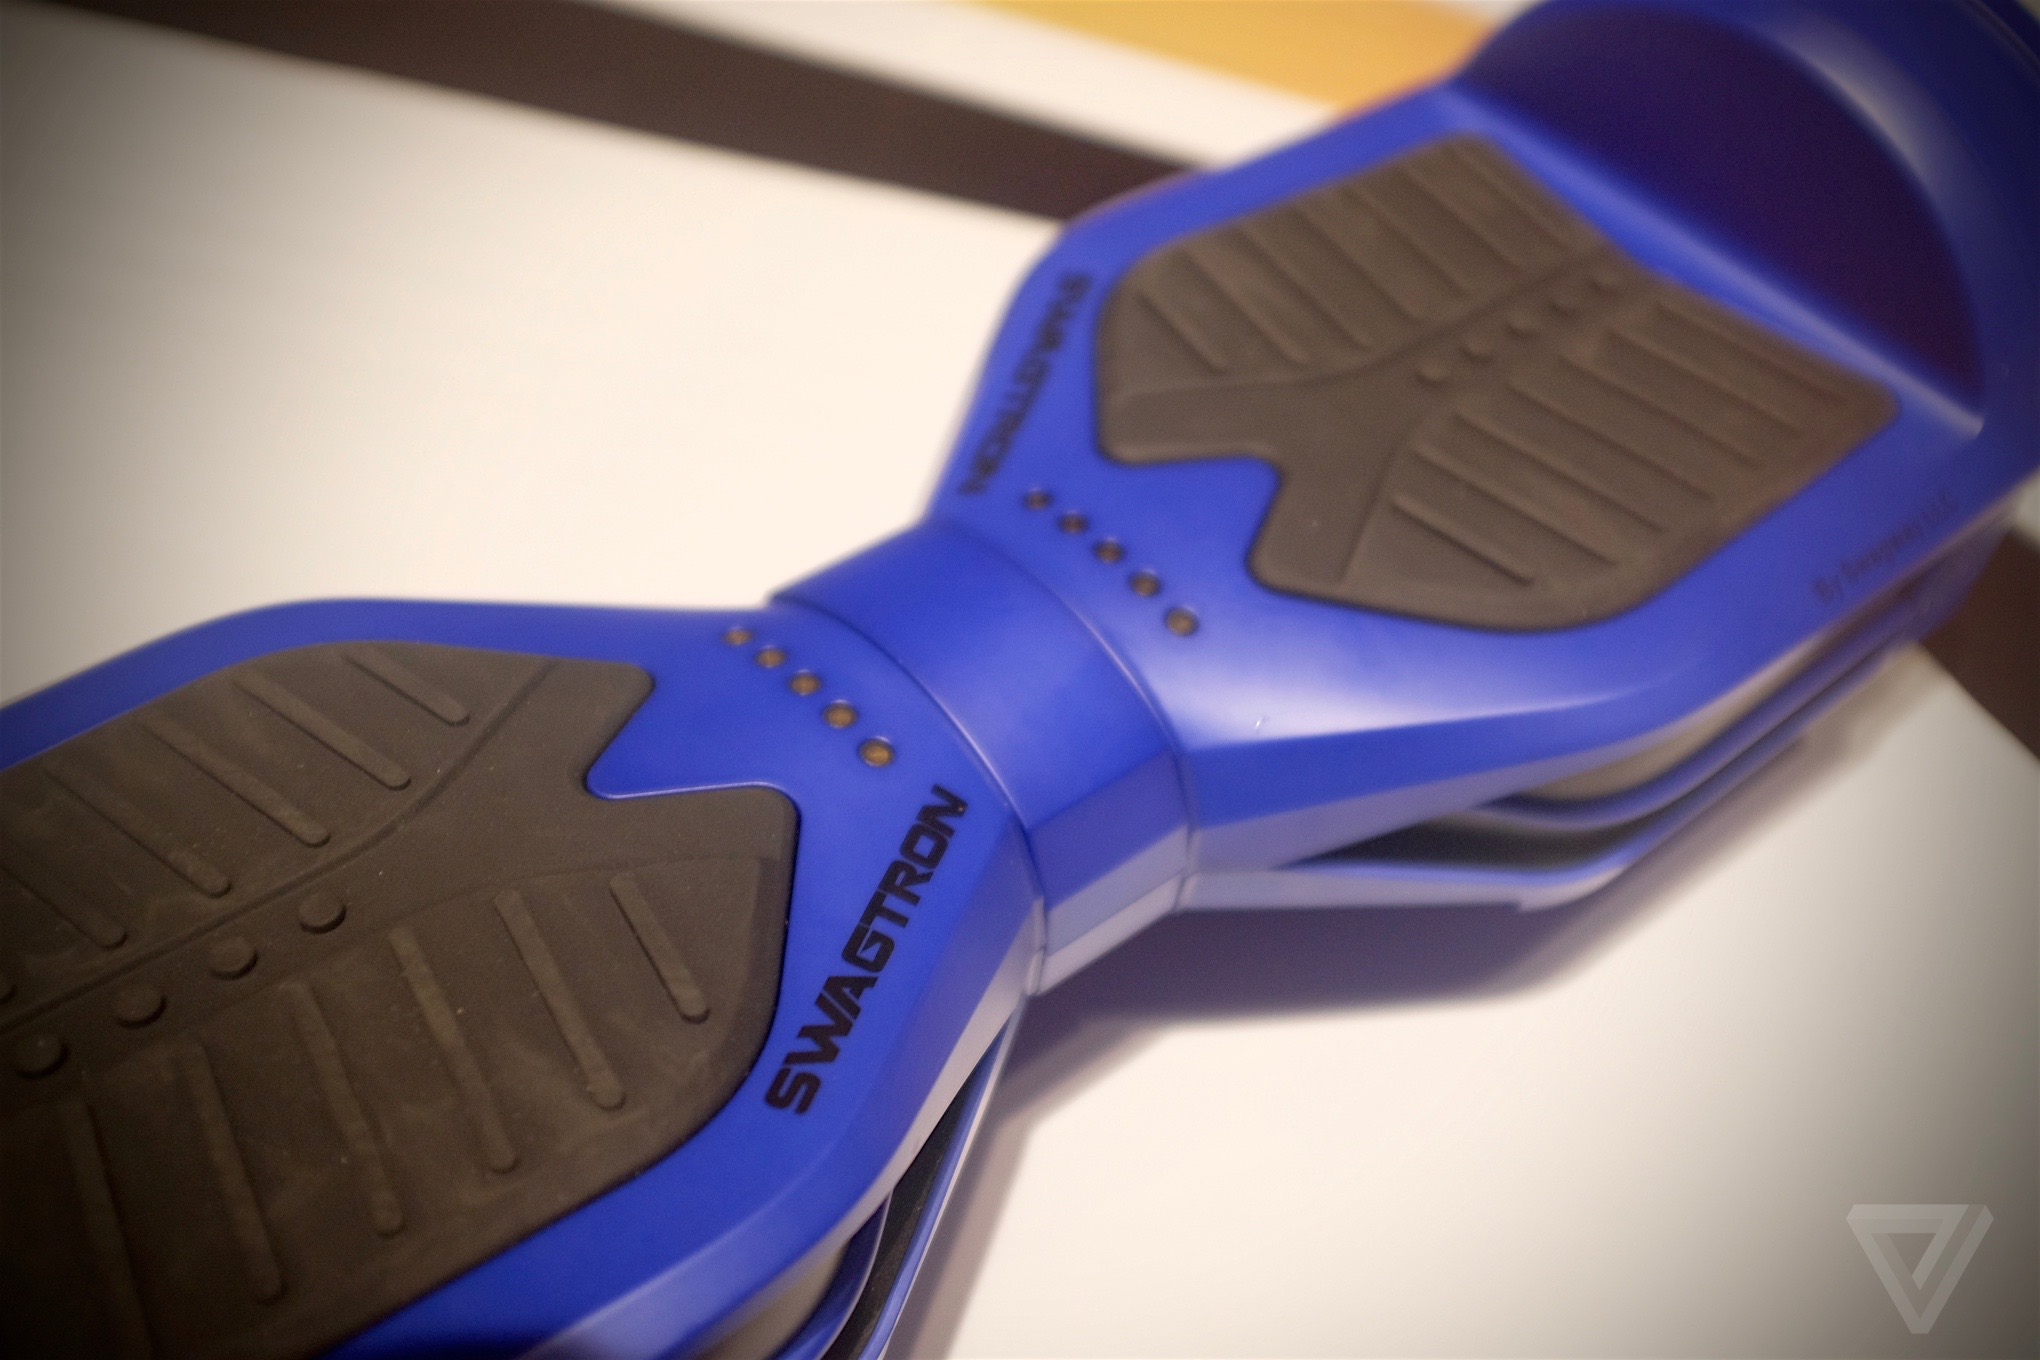 Swagway S New Swagtron Hoverboard Has Bluetooth Speakers